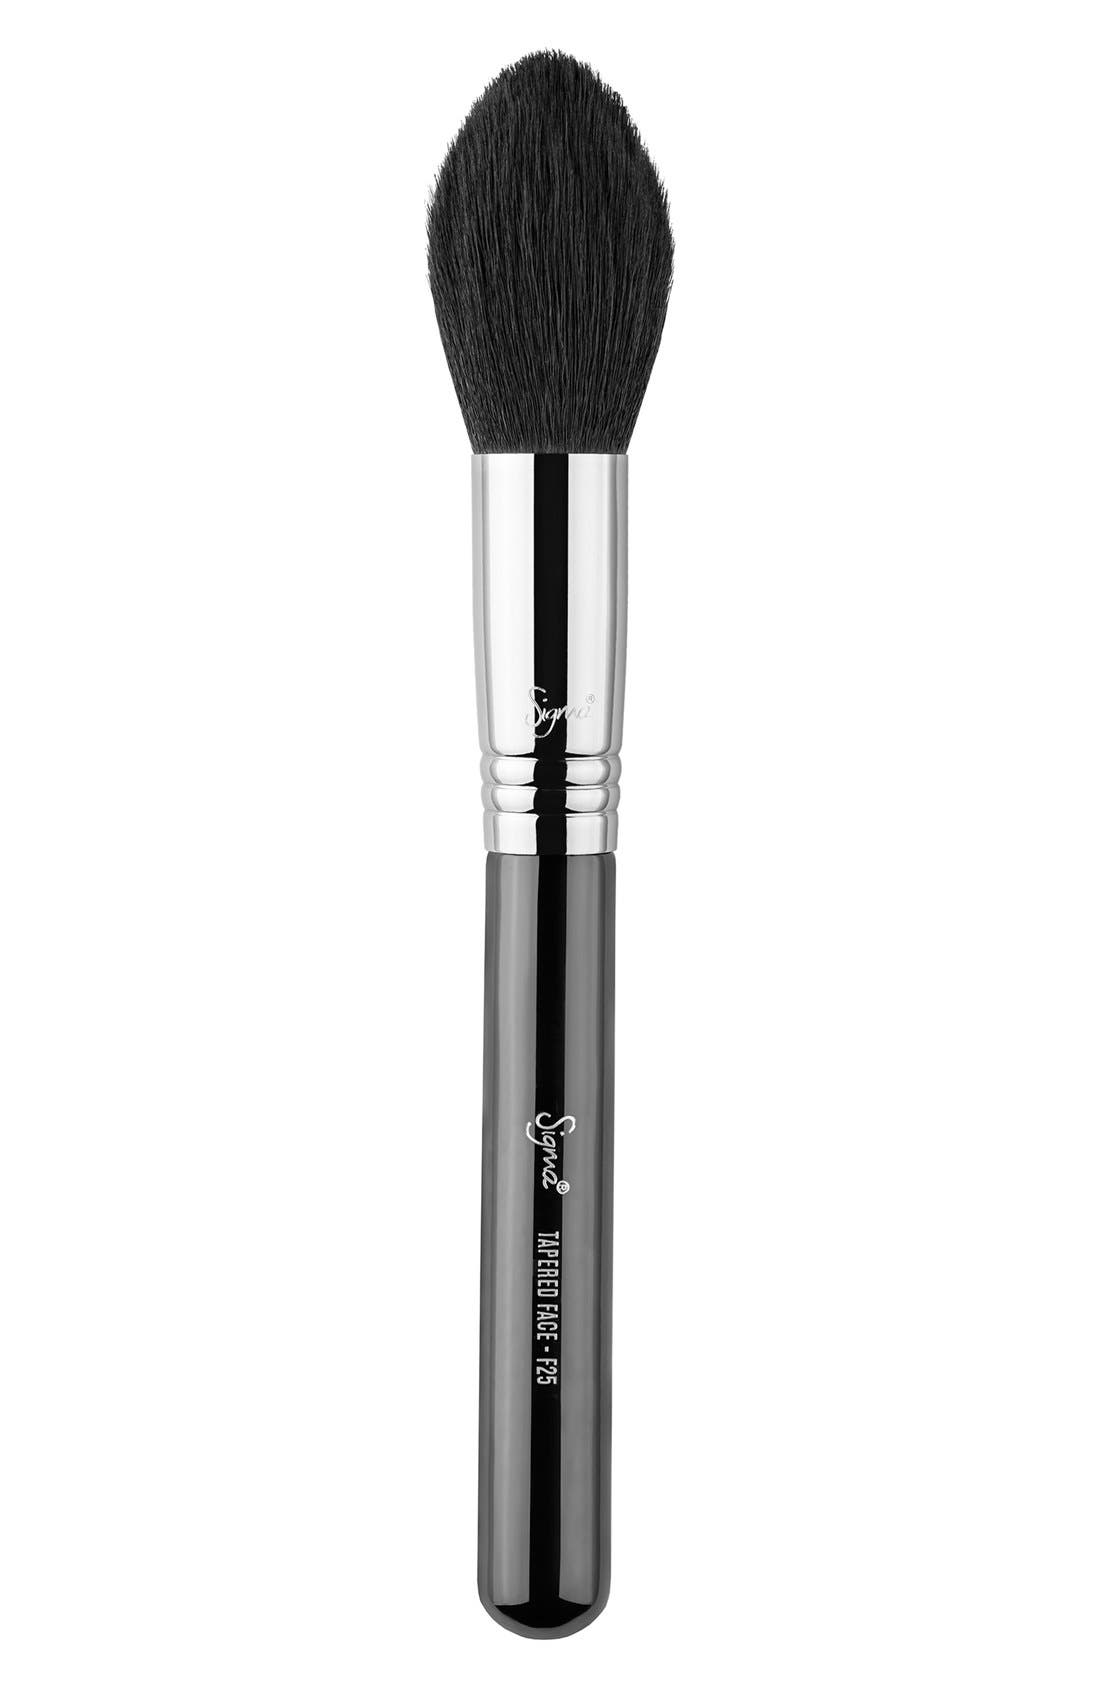 F25 Tapered Face Brush,                             Main thumbnail 1, color,                             NO COLOR